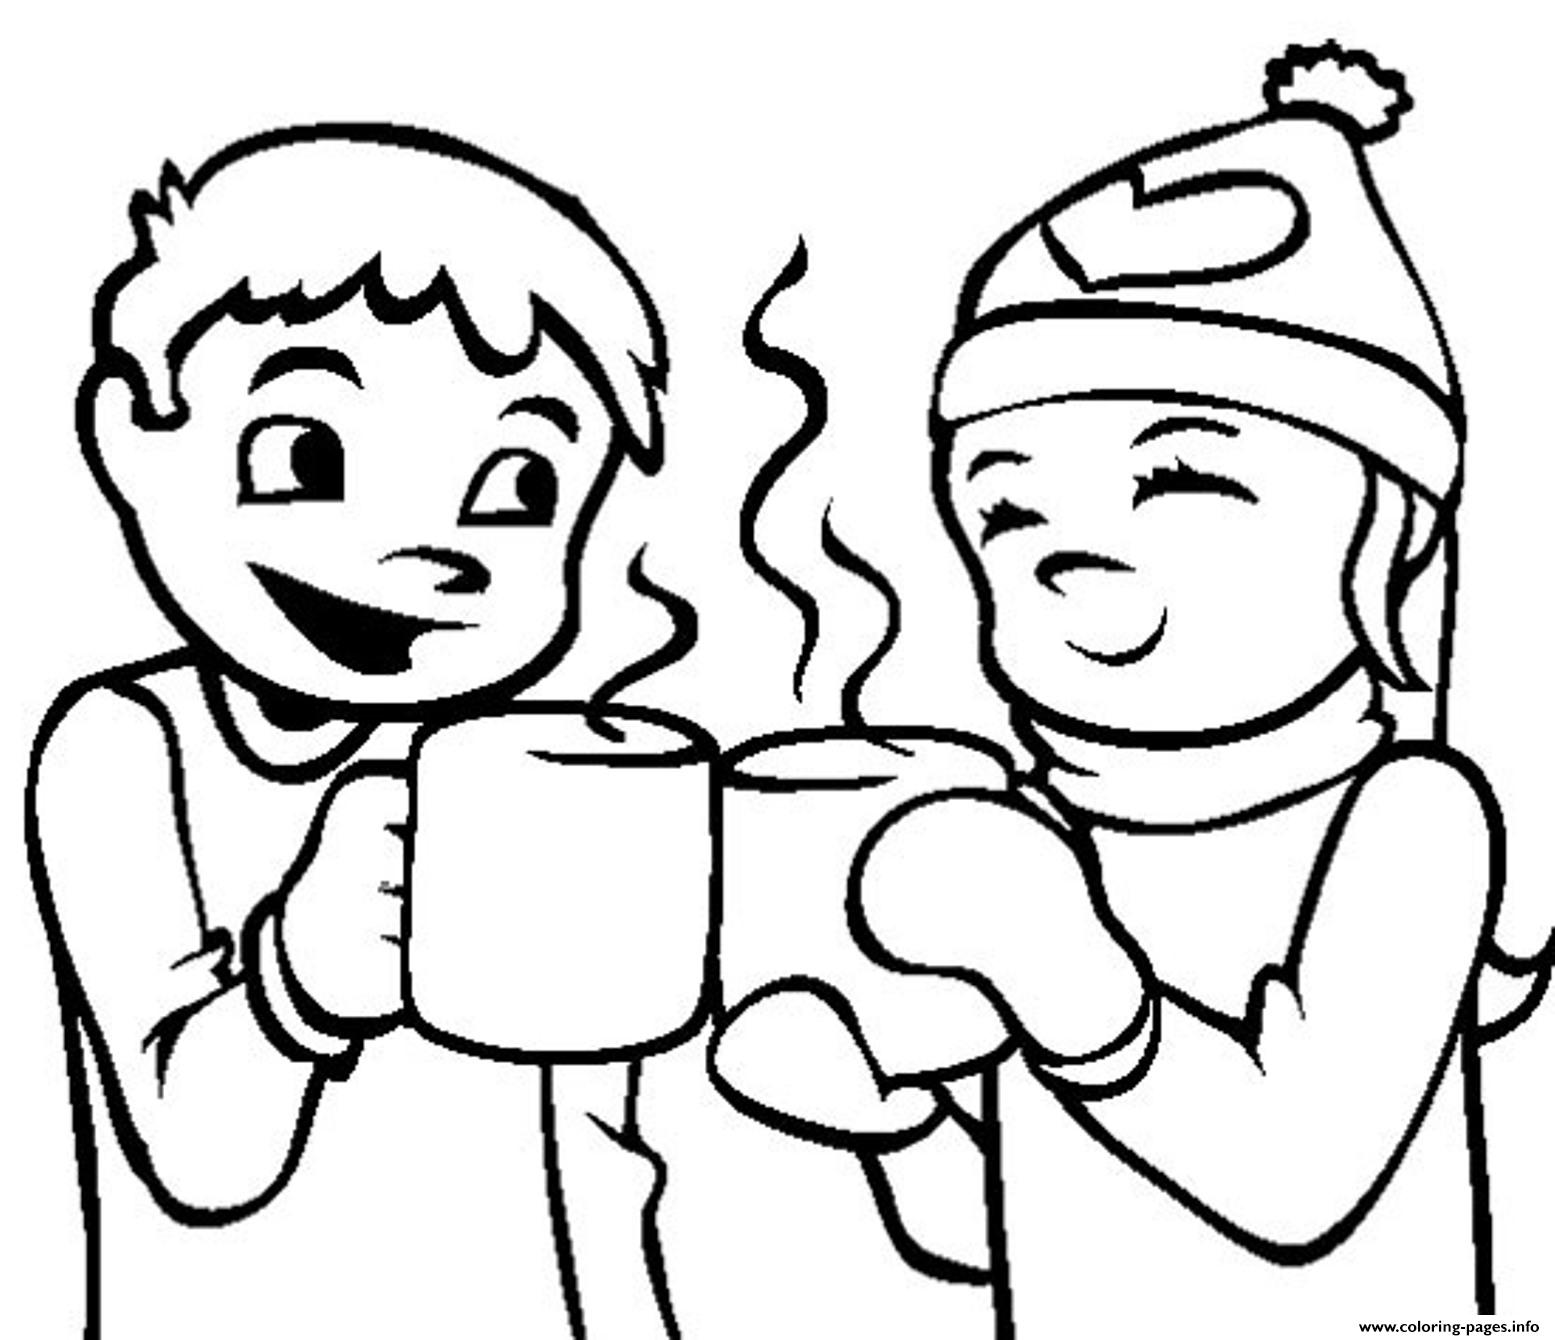 Winter Hot Chocolate6246 coloring pages